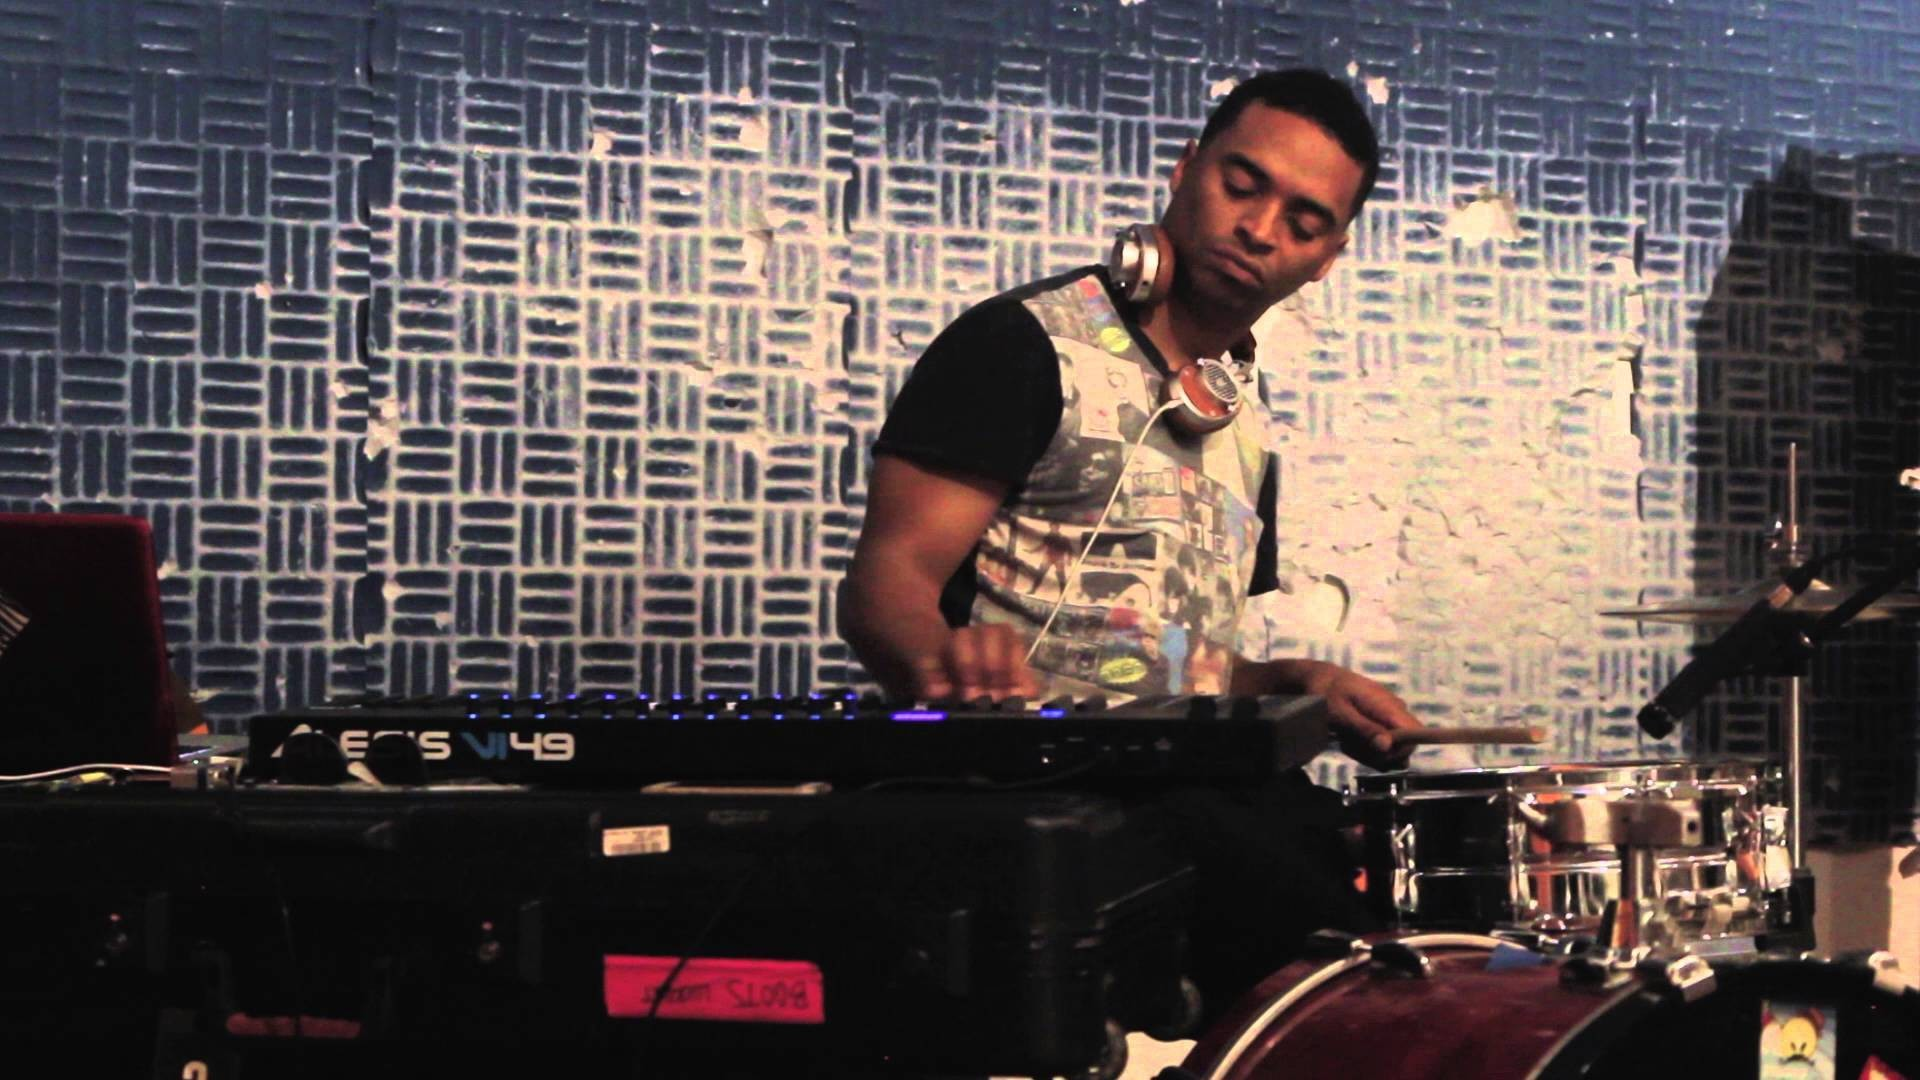 Watch a Short Video Documenting Deantoni Parks's Cyborg Grooves